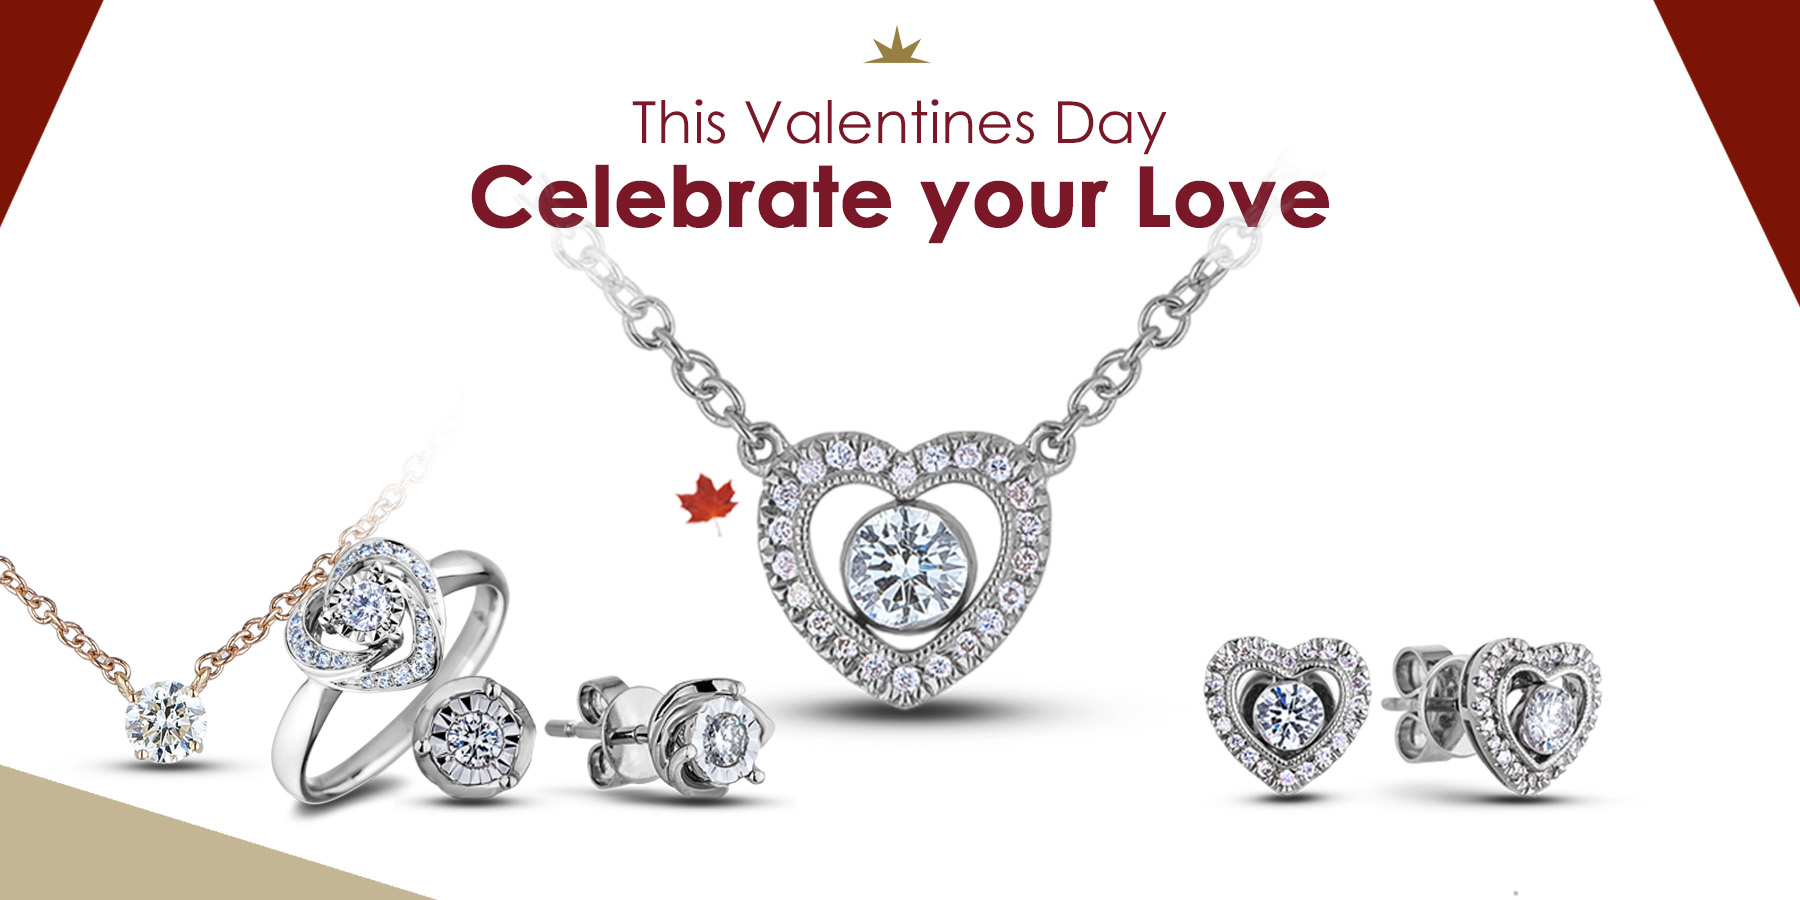 BLUE NILE: Valentine's Gifts from the Heart |Save up to 40% Off